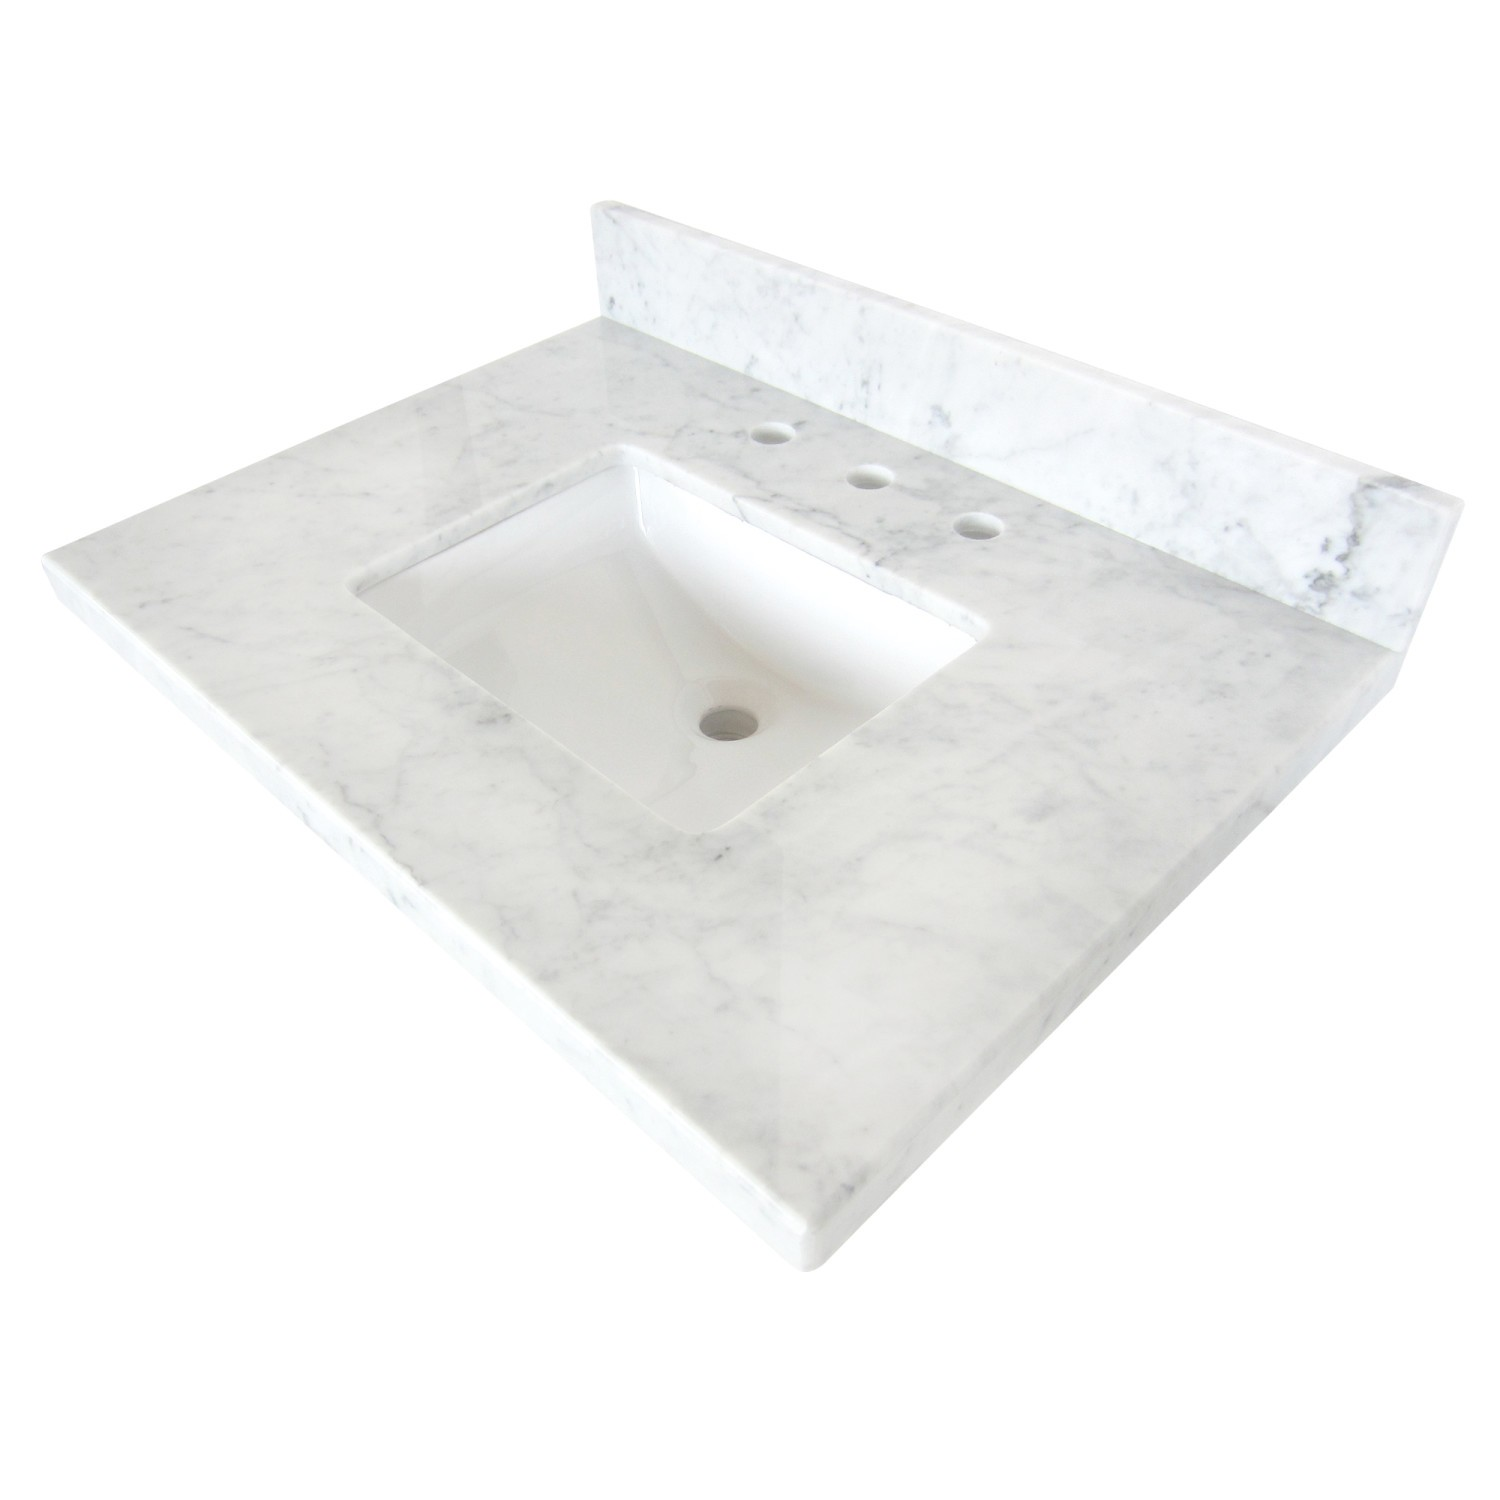 KINGSTON BRASS KVPB3022M38SQ TEMPLETON CARRARA MARBLE VANITY TOP WITH SQUARE UNDERMOUNT SINK IN WHITE